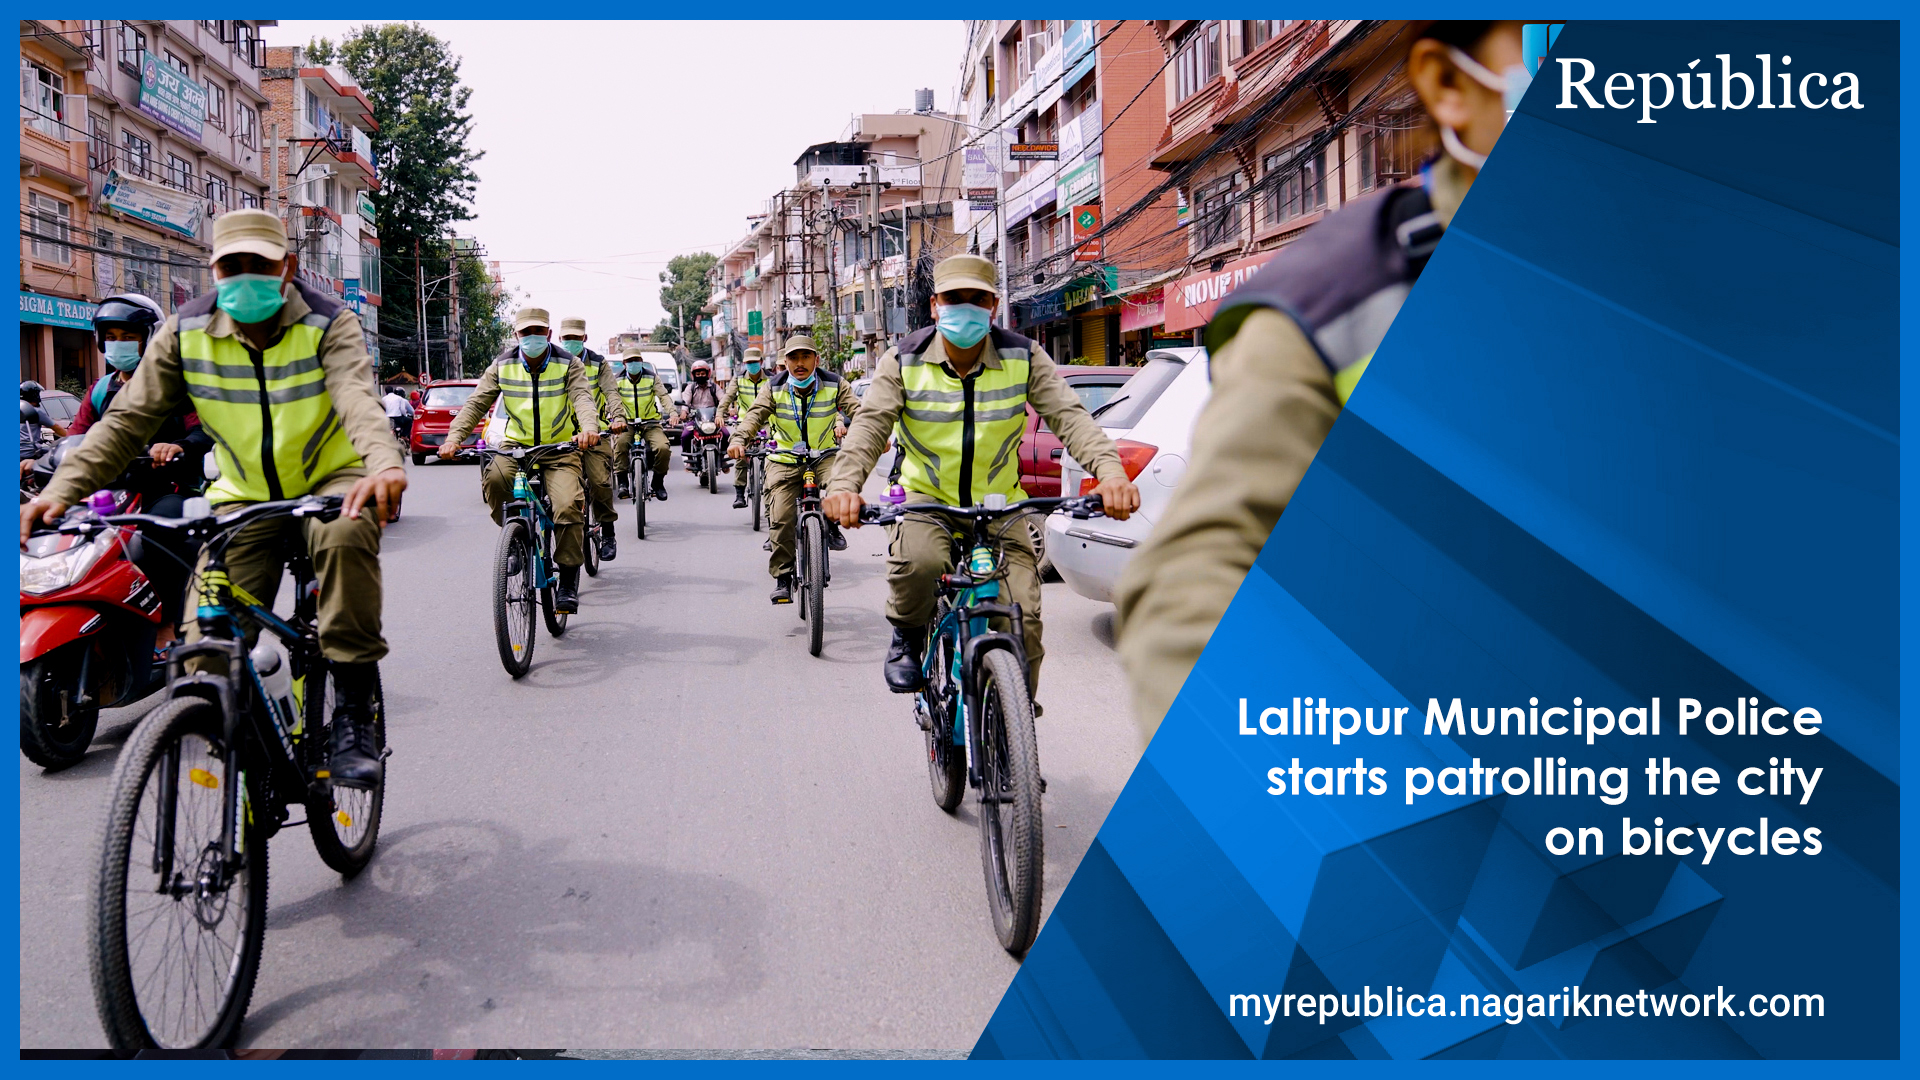 VIDEO: Lalitpur Municipal Police starts patrolling the city on bicycles